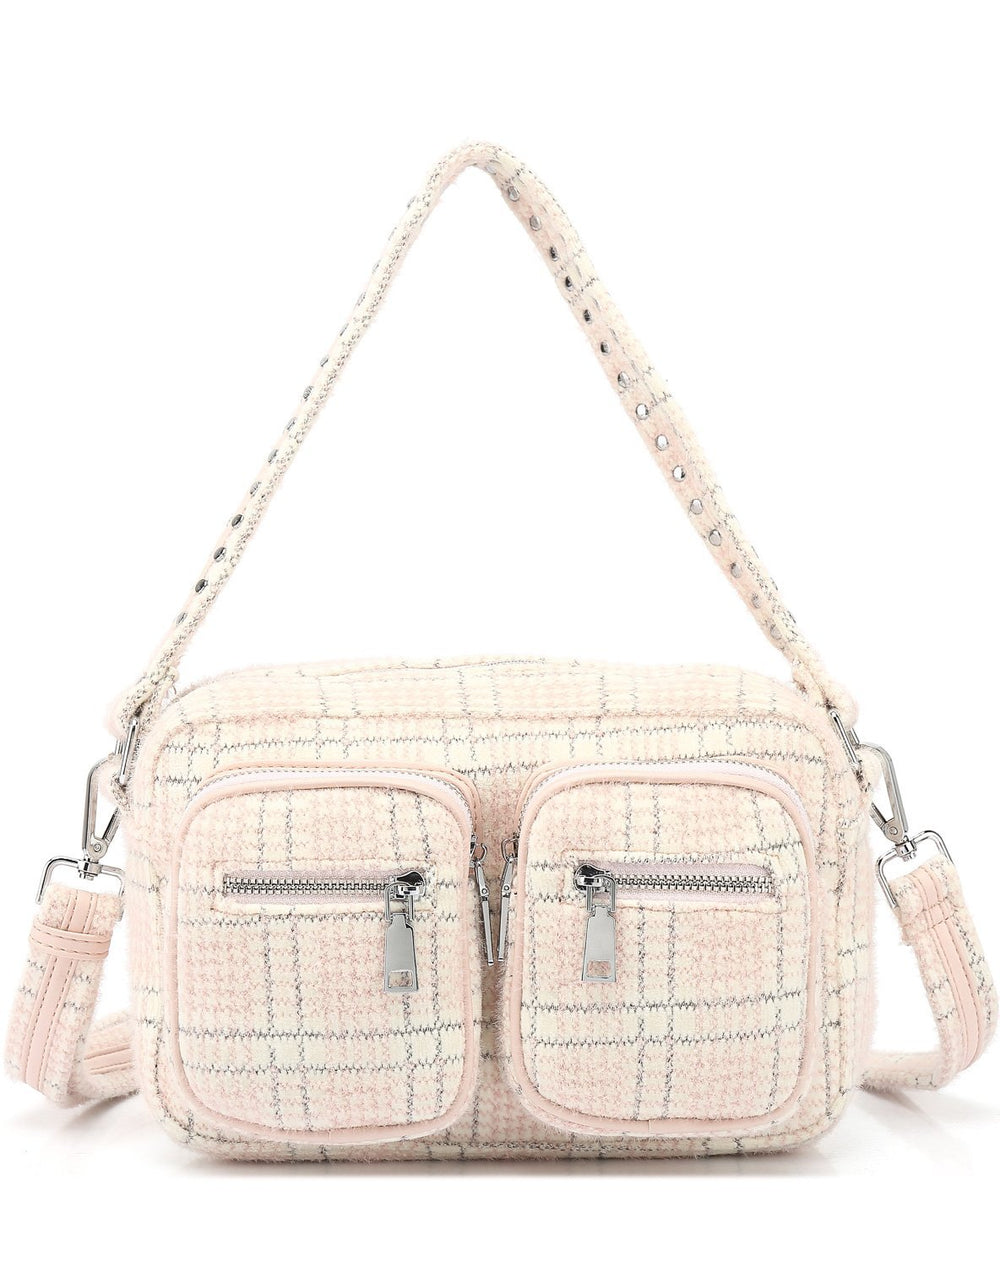 Noella Celina crossover bag rose/silver checks - Online-Mode